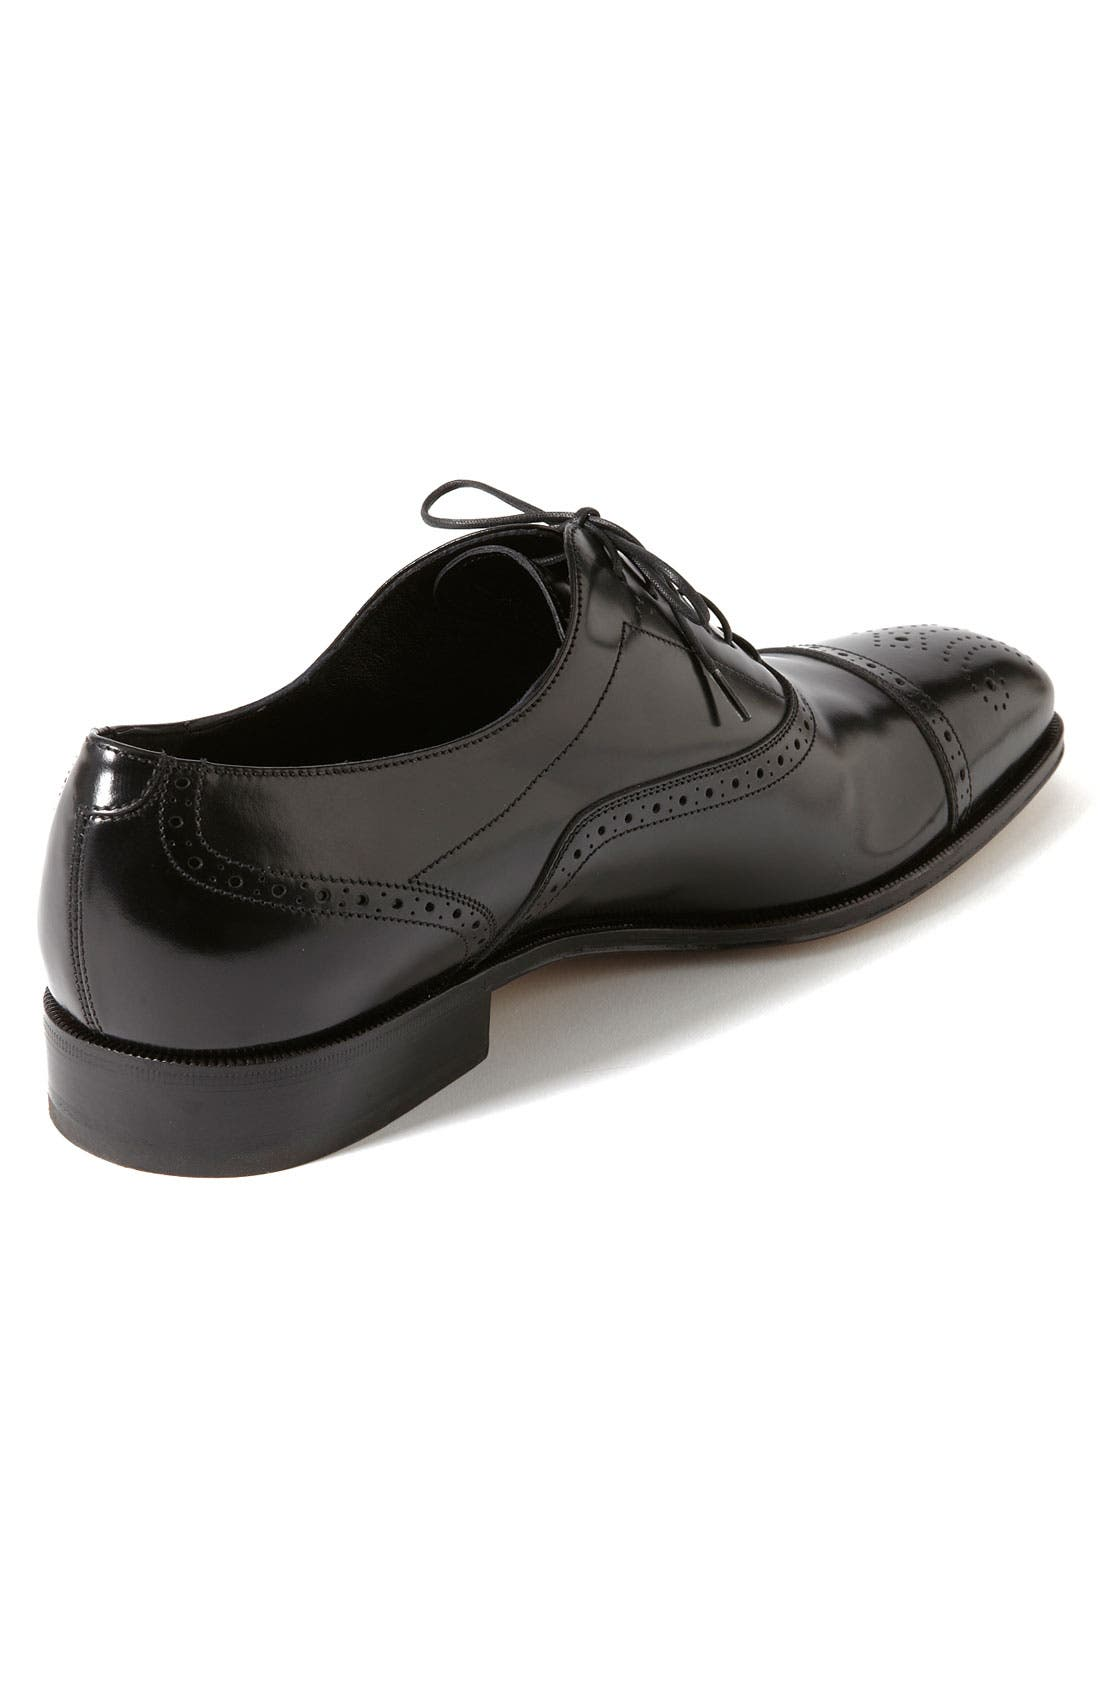 Alternate Image 2  - Salvatore Ferragamo 'Caesy' Cap Toe Oxford